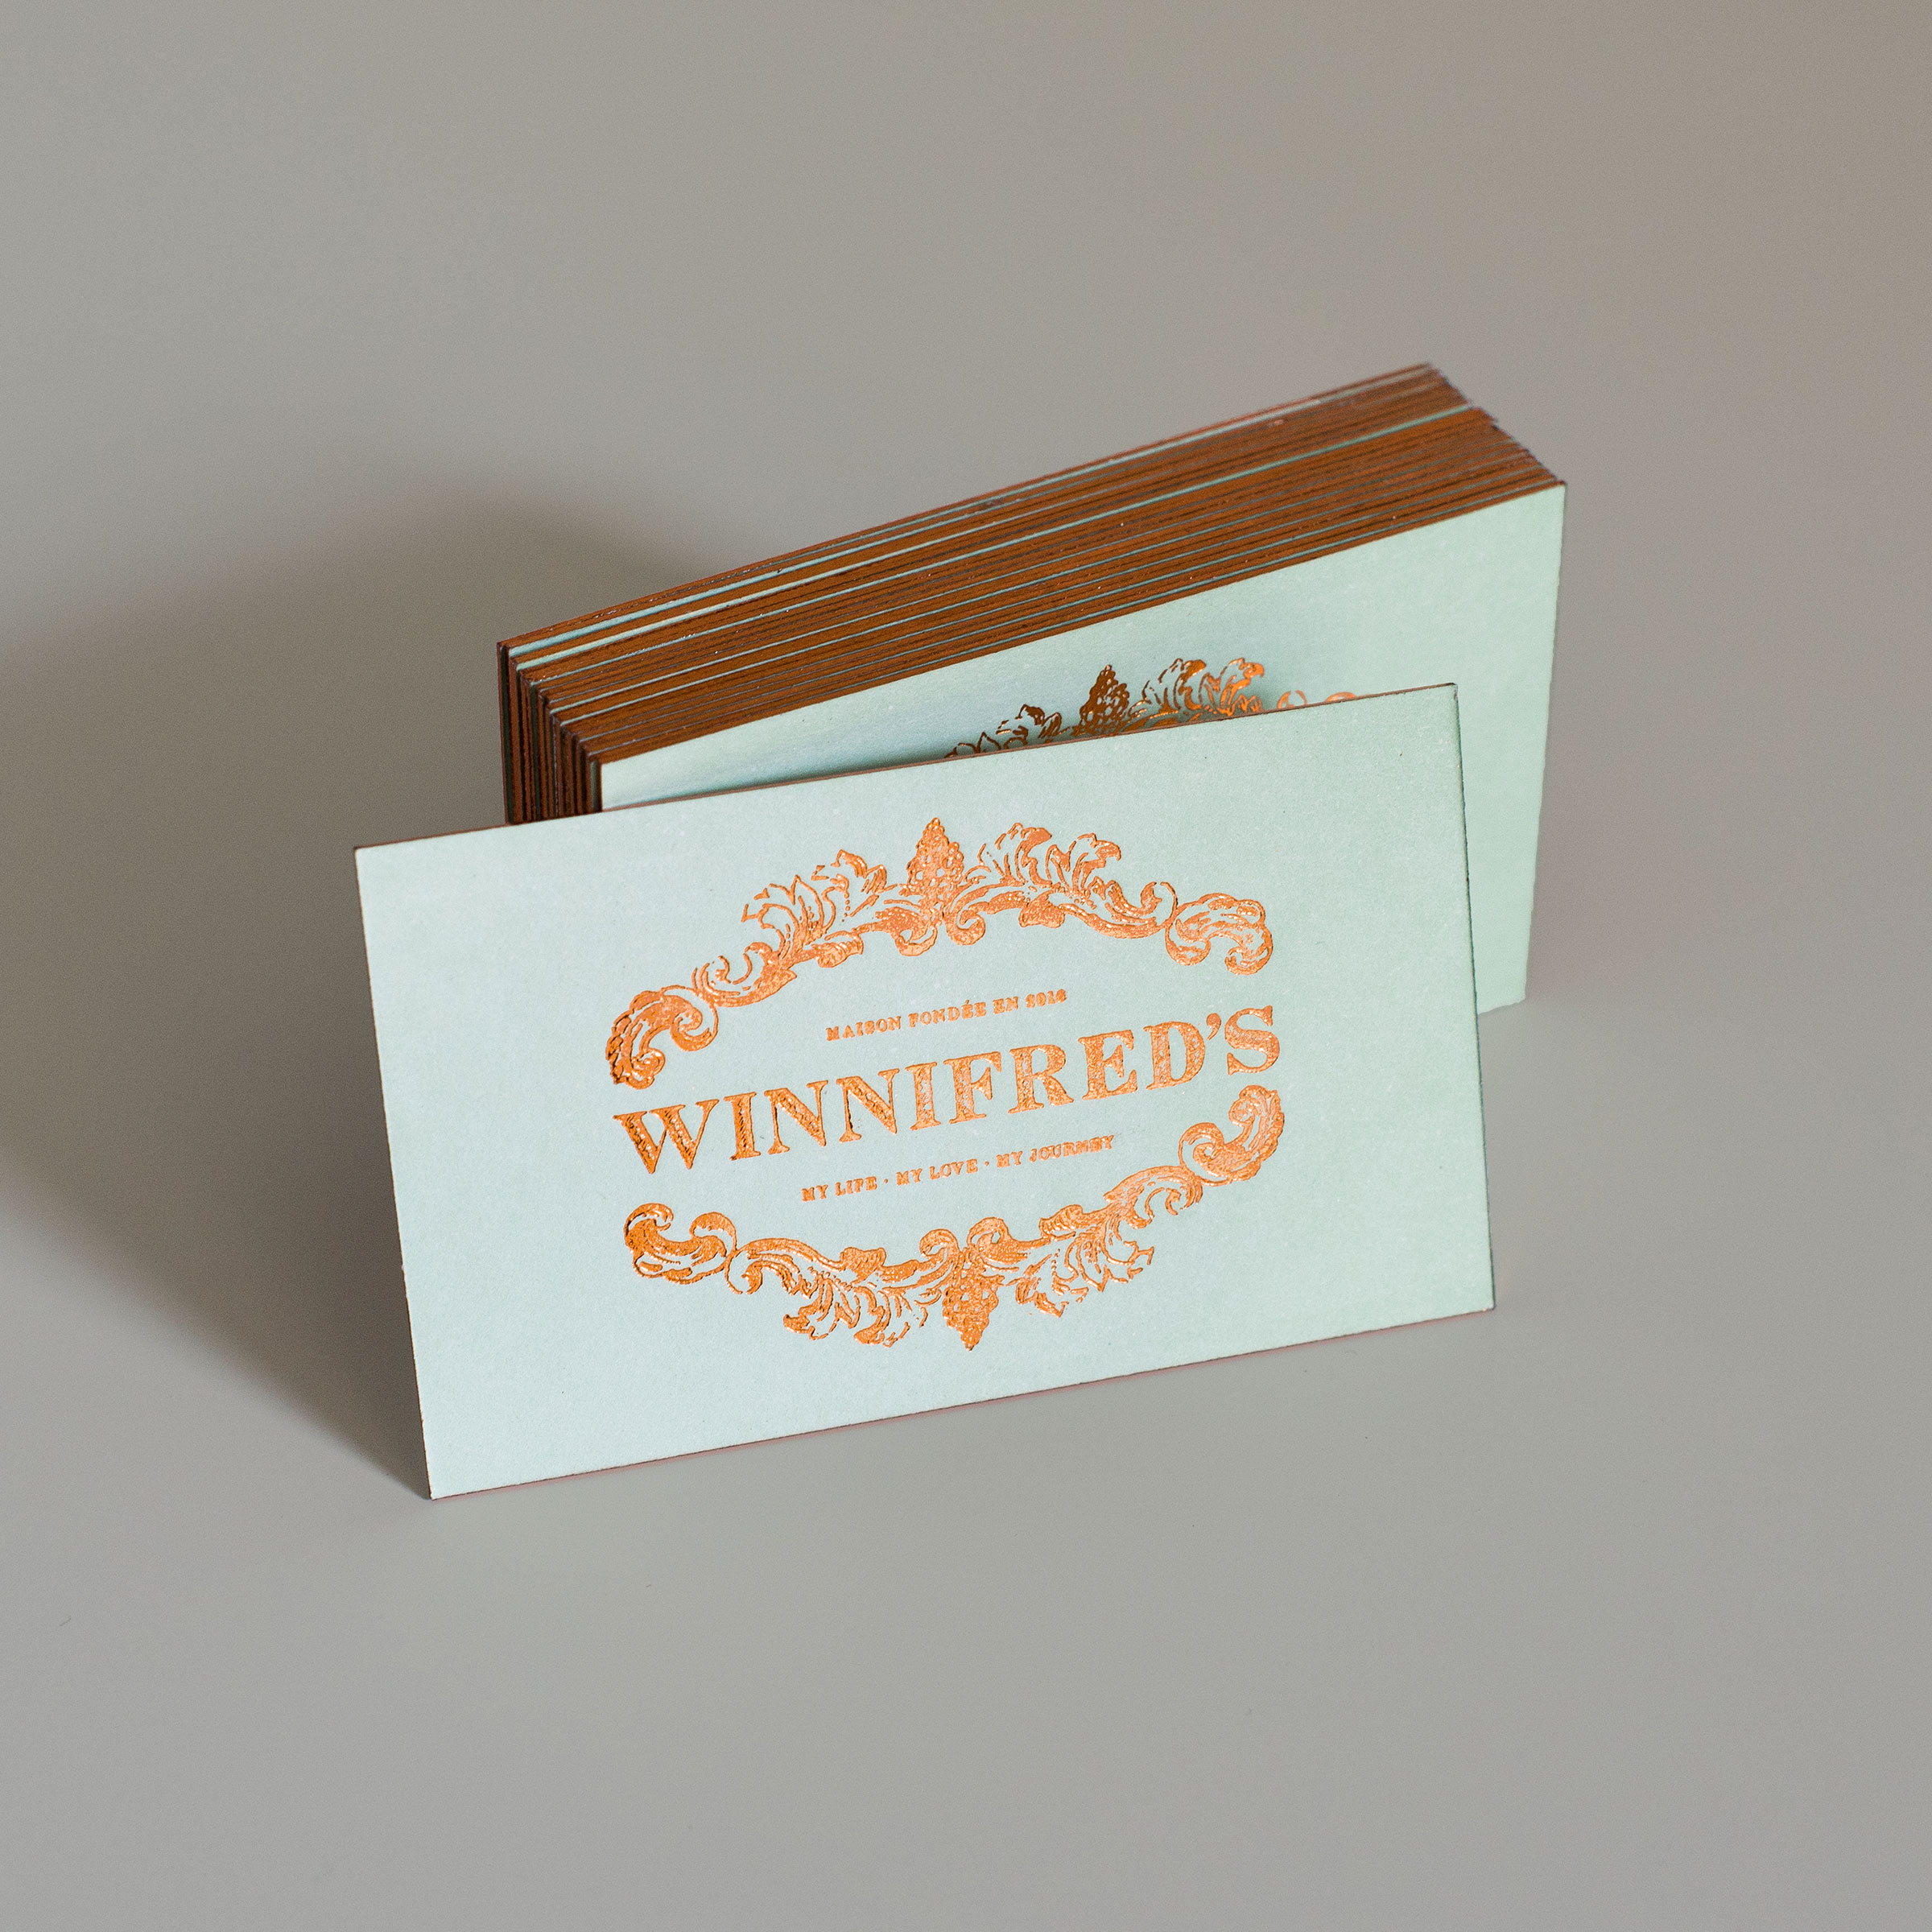 04_Winnifred's_Champagne_Business_Cards_by_Foster.jpg